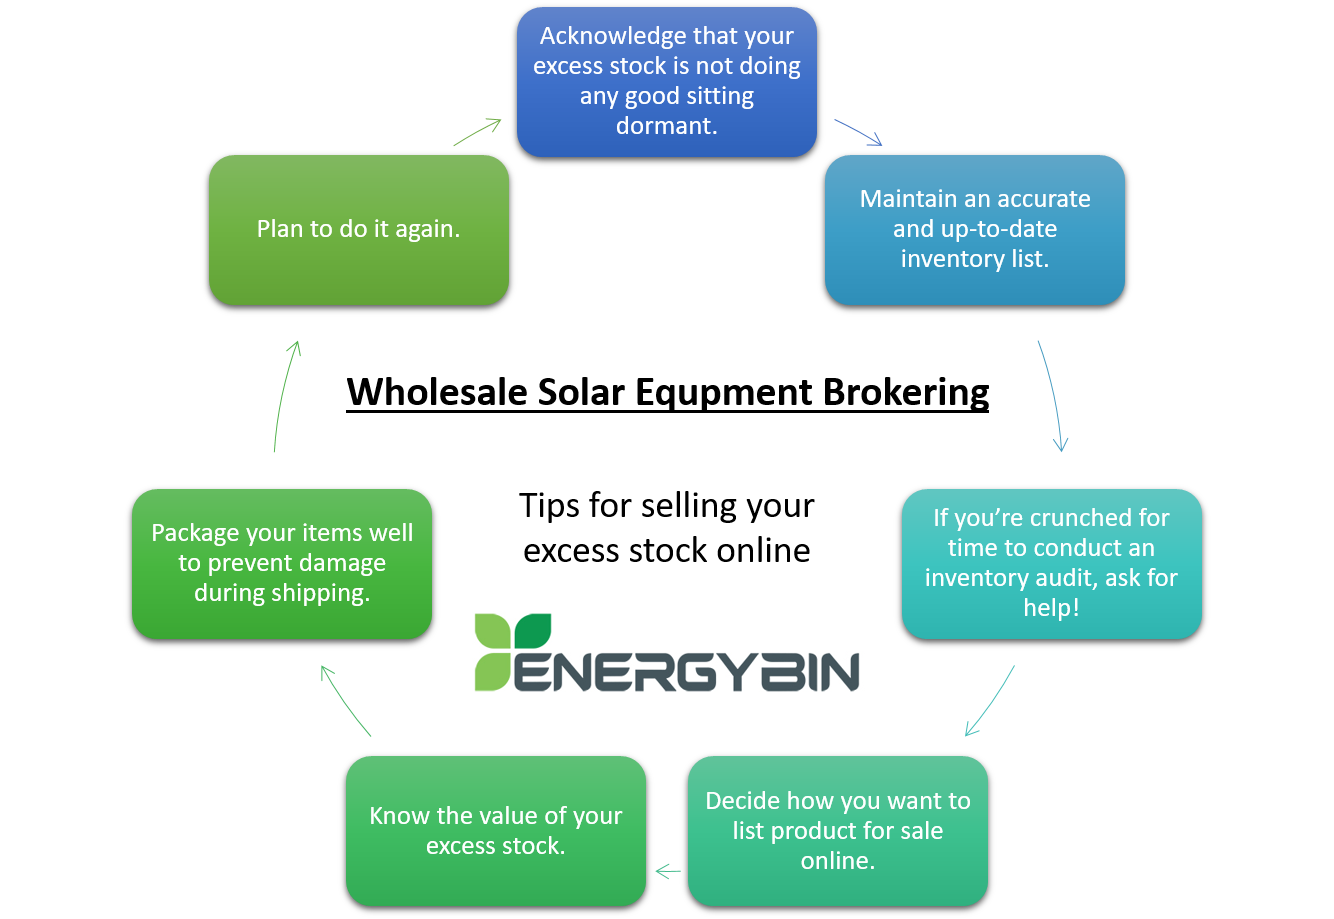 Wholesale Solar Equipment Brokering - Tips for selling your excess stock online